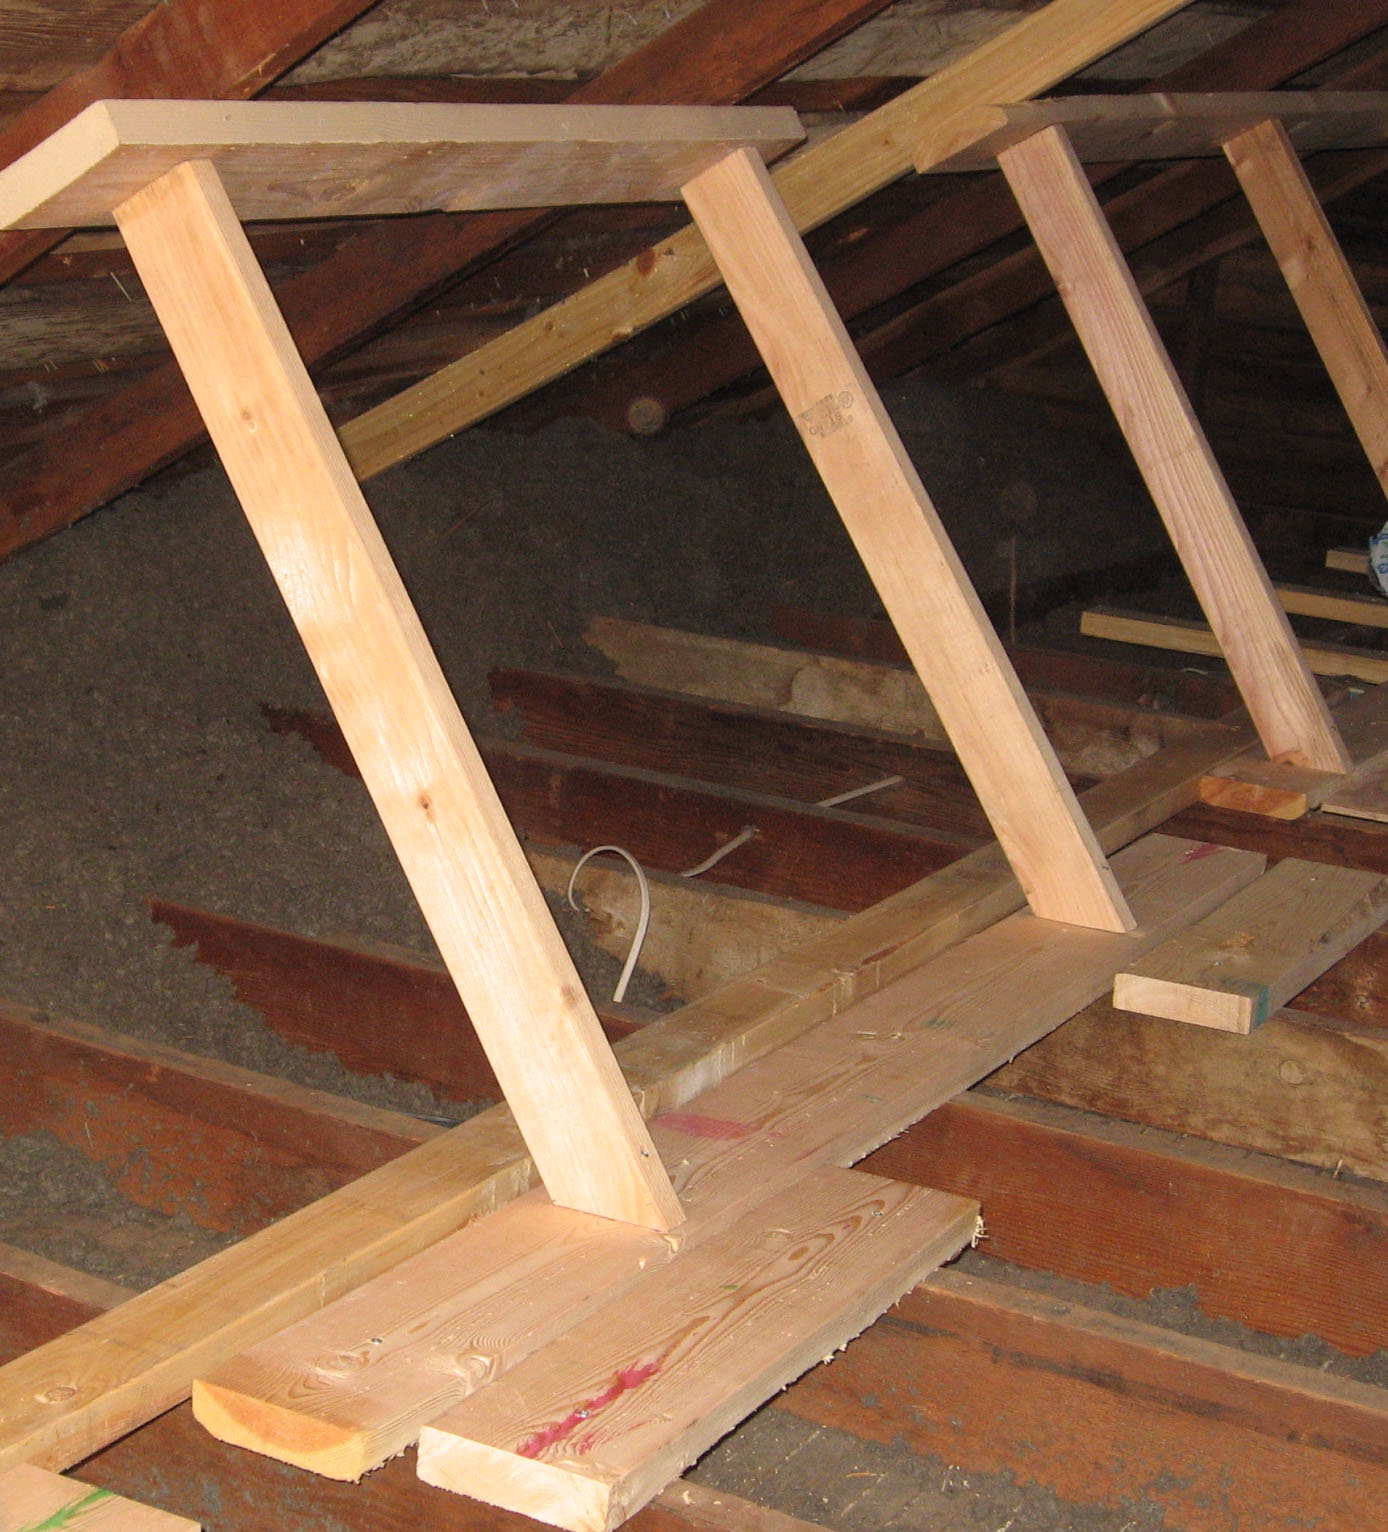 attic access   phillip norman attic access - phillip norman attic access